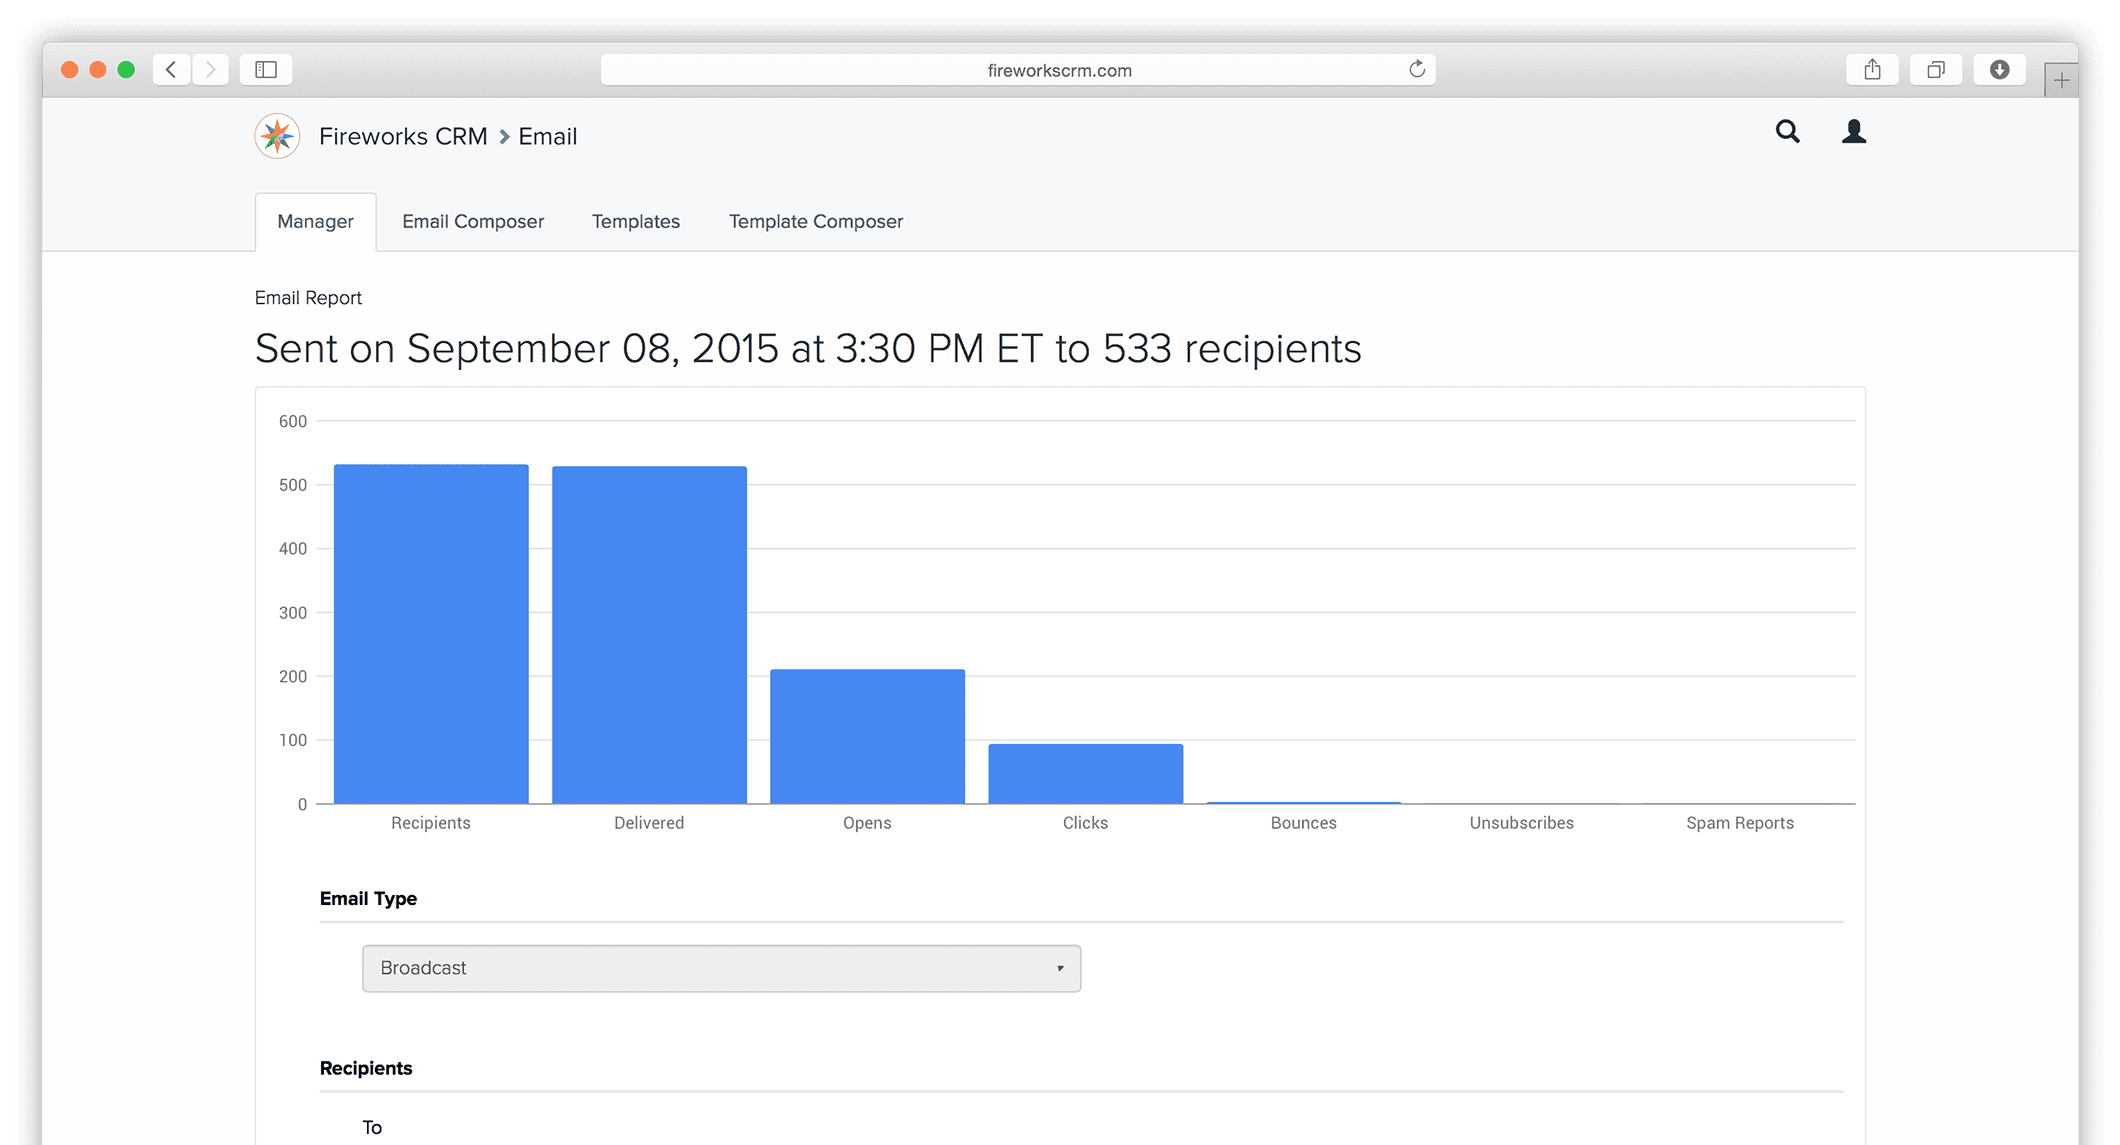 With Fireworks, it's easy to track and measure email campaign results in real time. View your delivery rate, opens, click-thrus, and more.